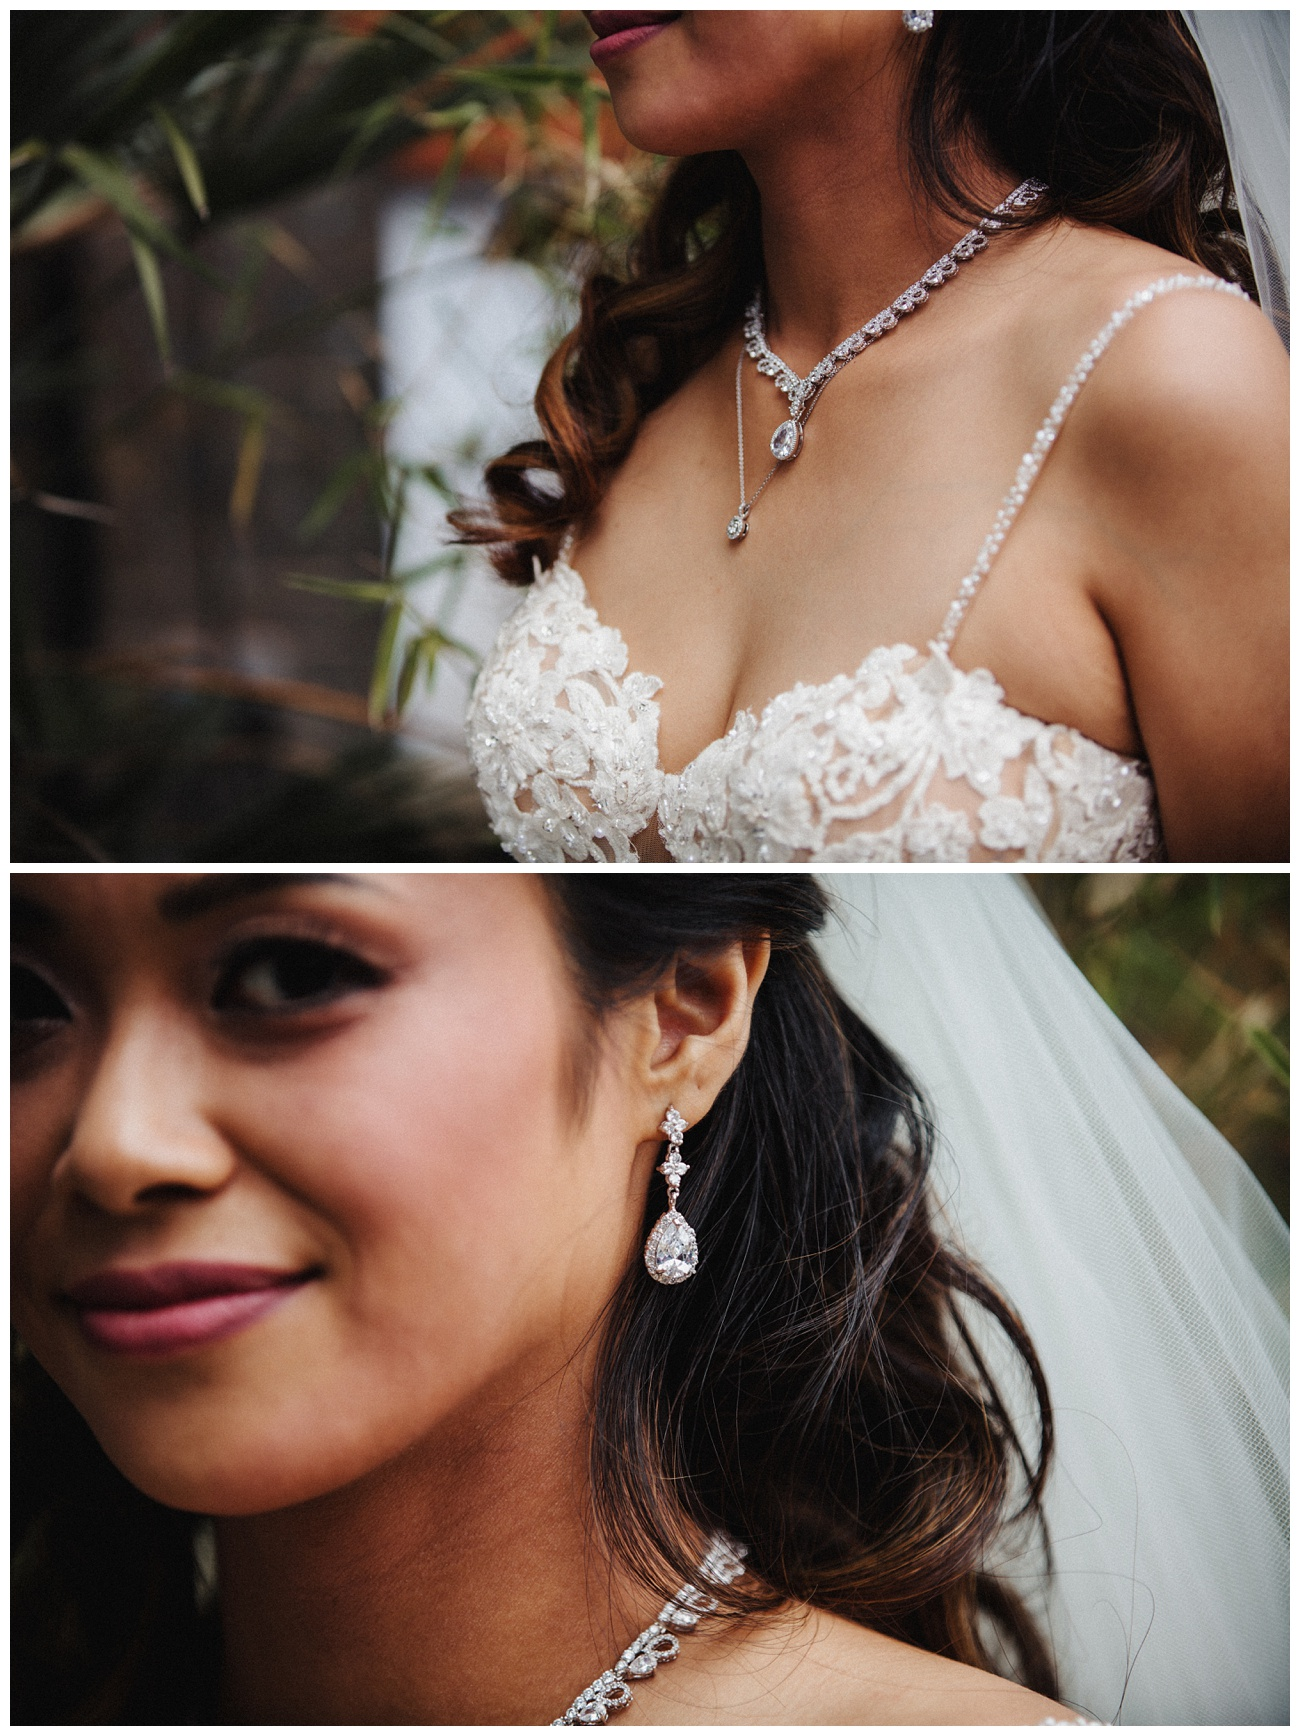 A portrait of the bride wearing her jewellery